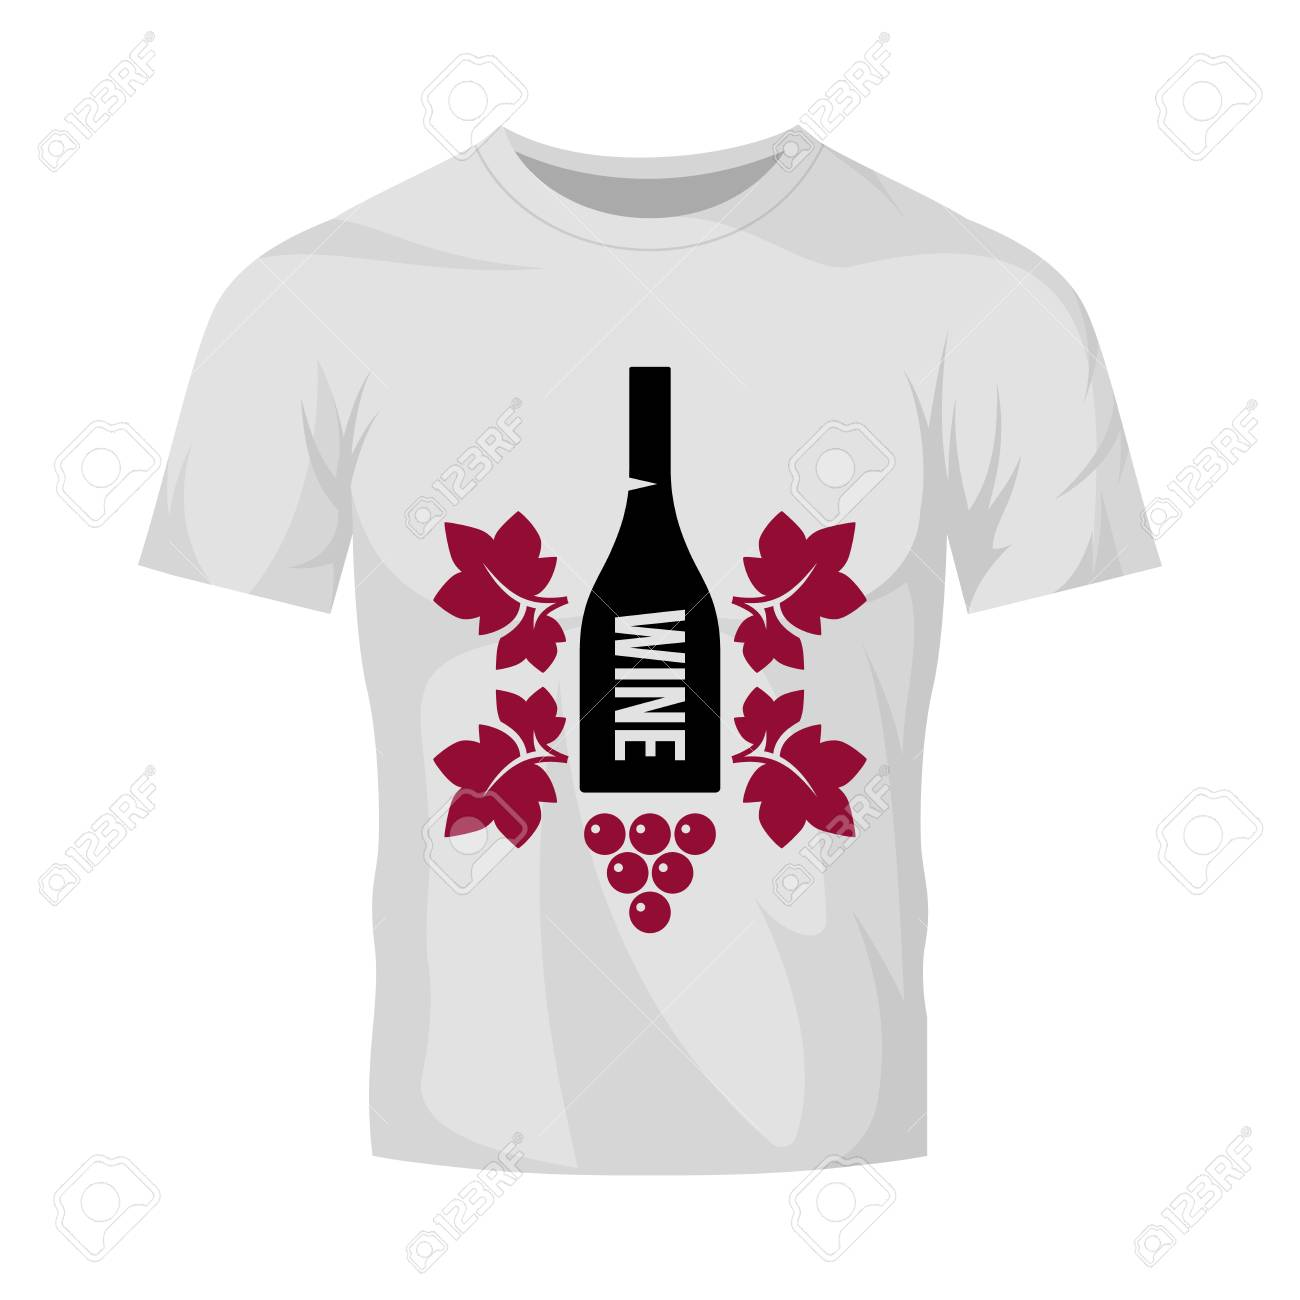 Modern wine vector logo sign for tavern, restaurant, house, shop, store, club and cellar isolated on white t-shirt mock up. Premium quality vinery logotype illustration. Fashion badge design template. - 126498885